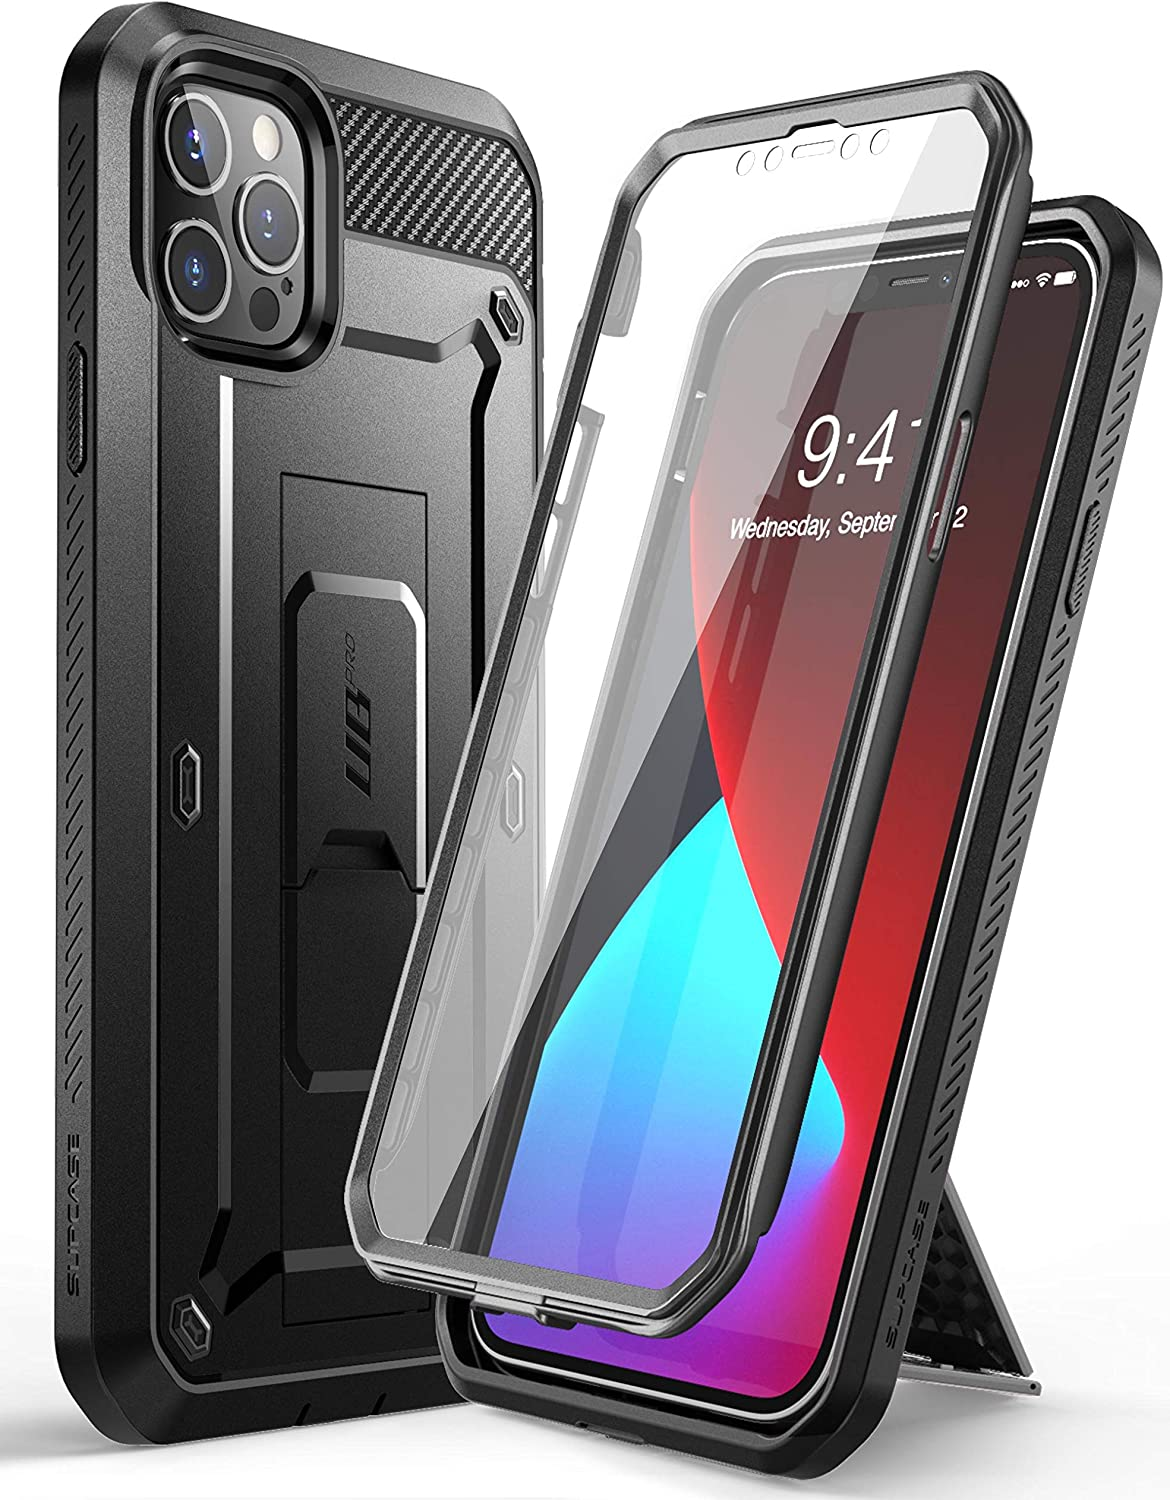 SUPCASE Unicorn Beetle Pro Series Case for iPhone 12 Pro Max